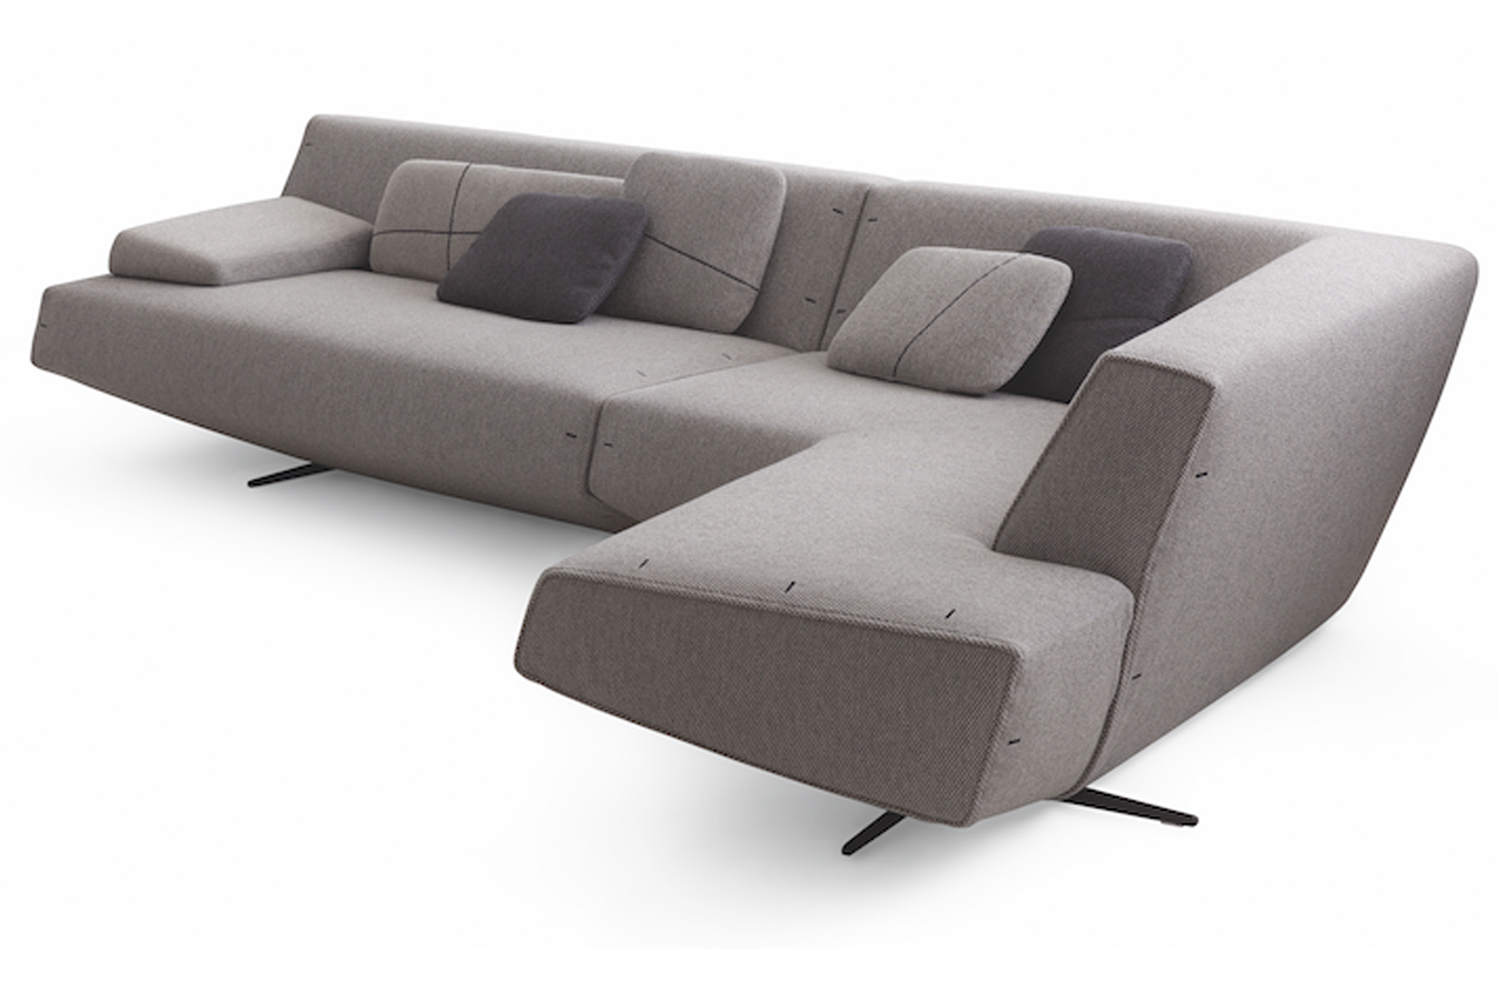 Based on cross-shaped legs that are raised just slightly off the ground, the sofa appears to stay afloat in the air to counter-balance its form.